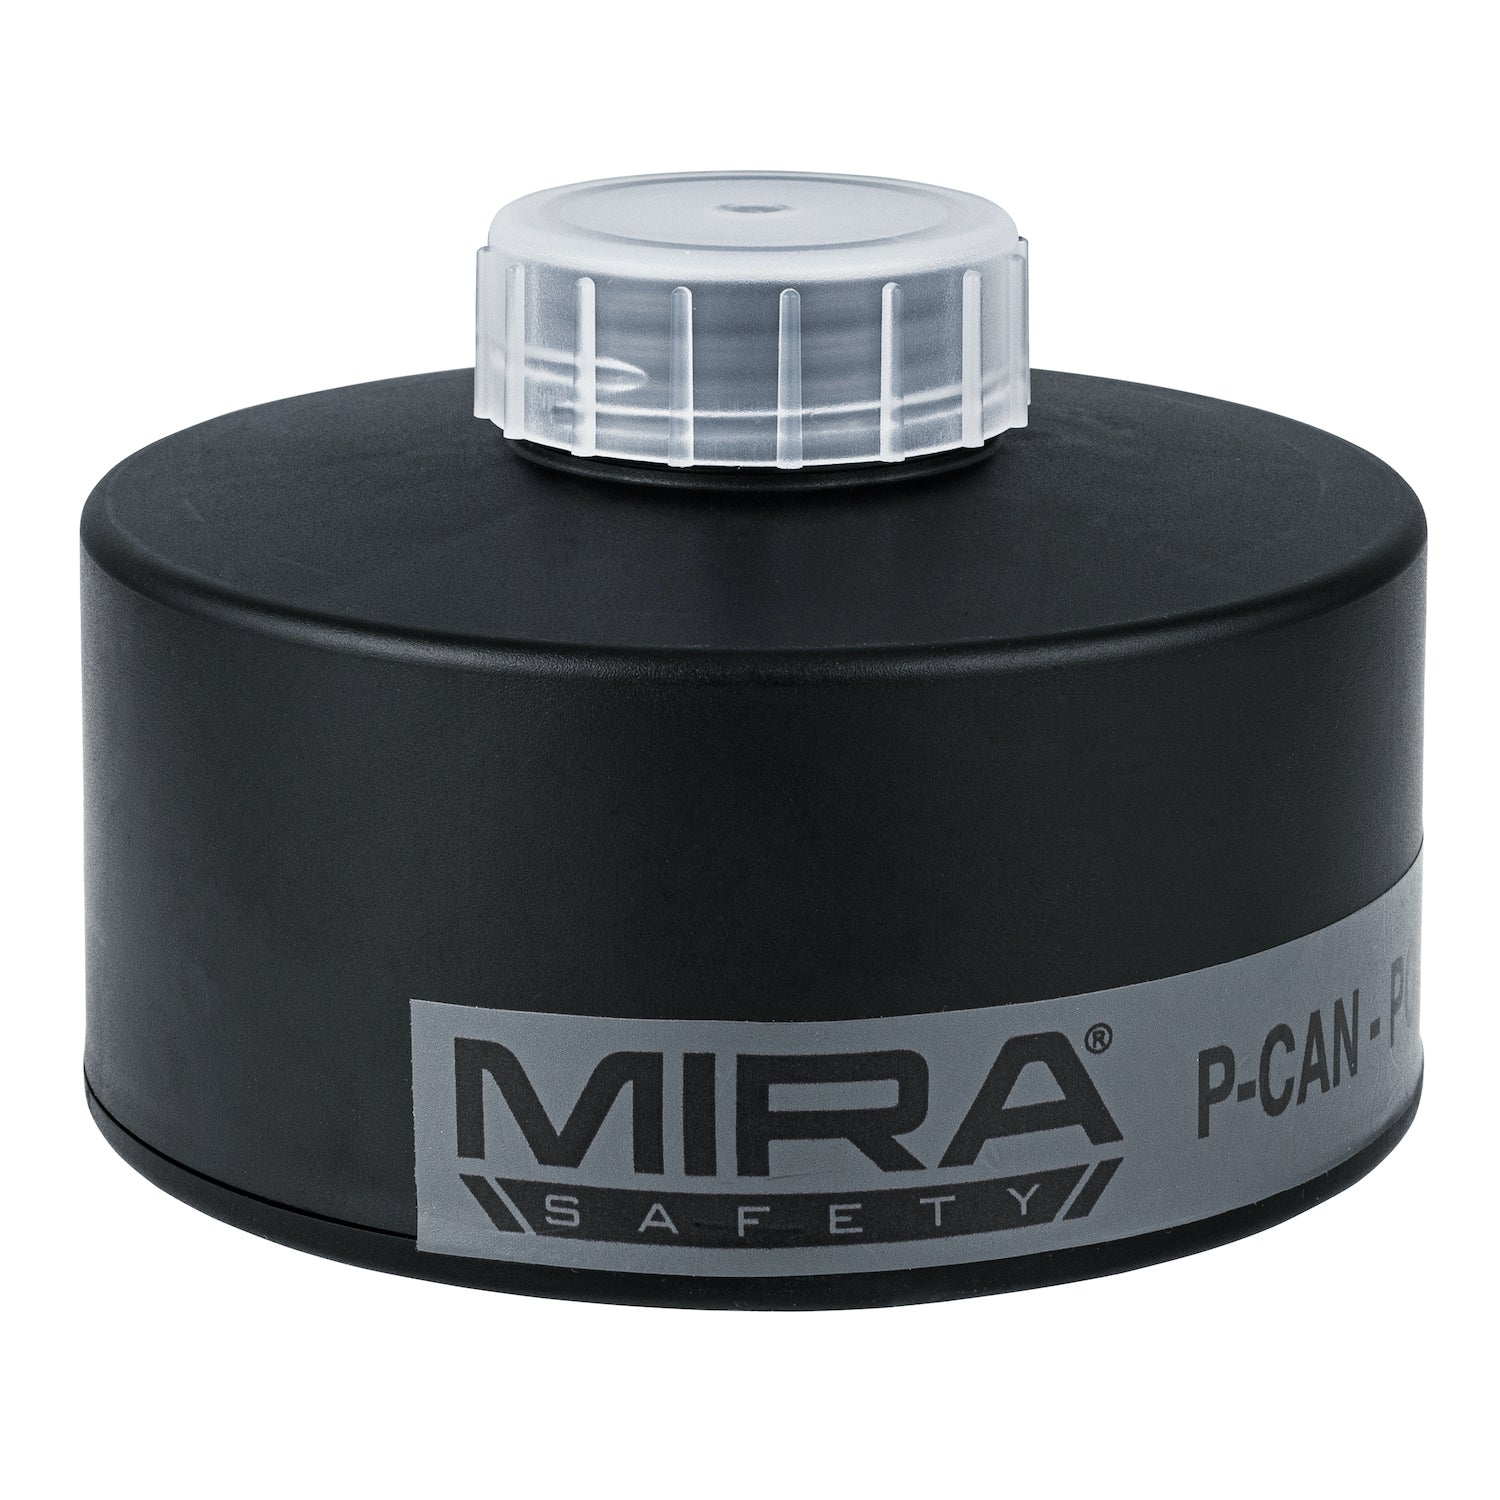 P-CAN Police Gas Mask Filter front view with MIRA Safety logo